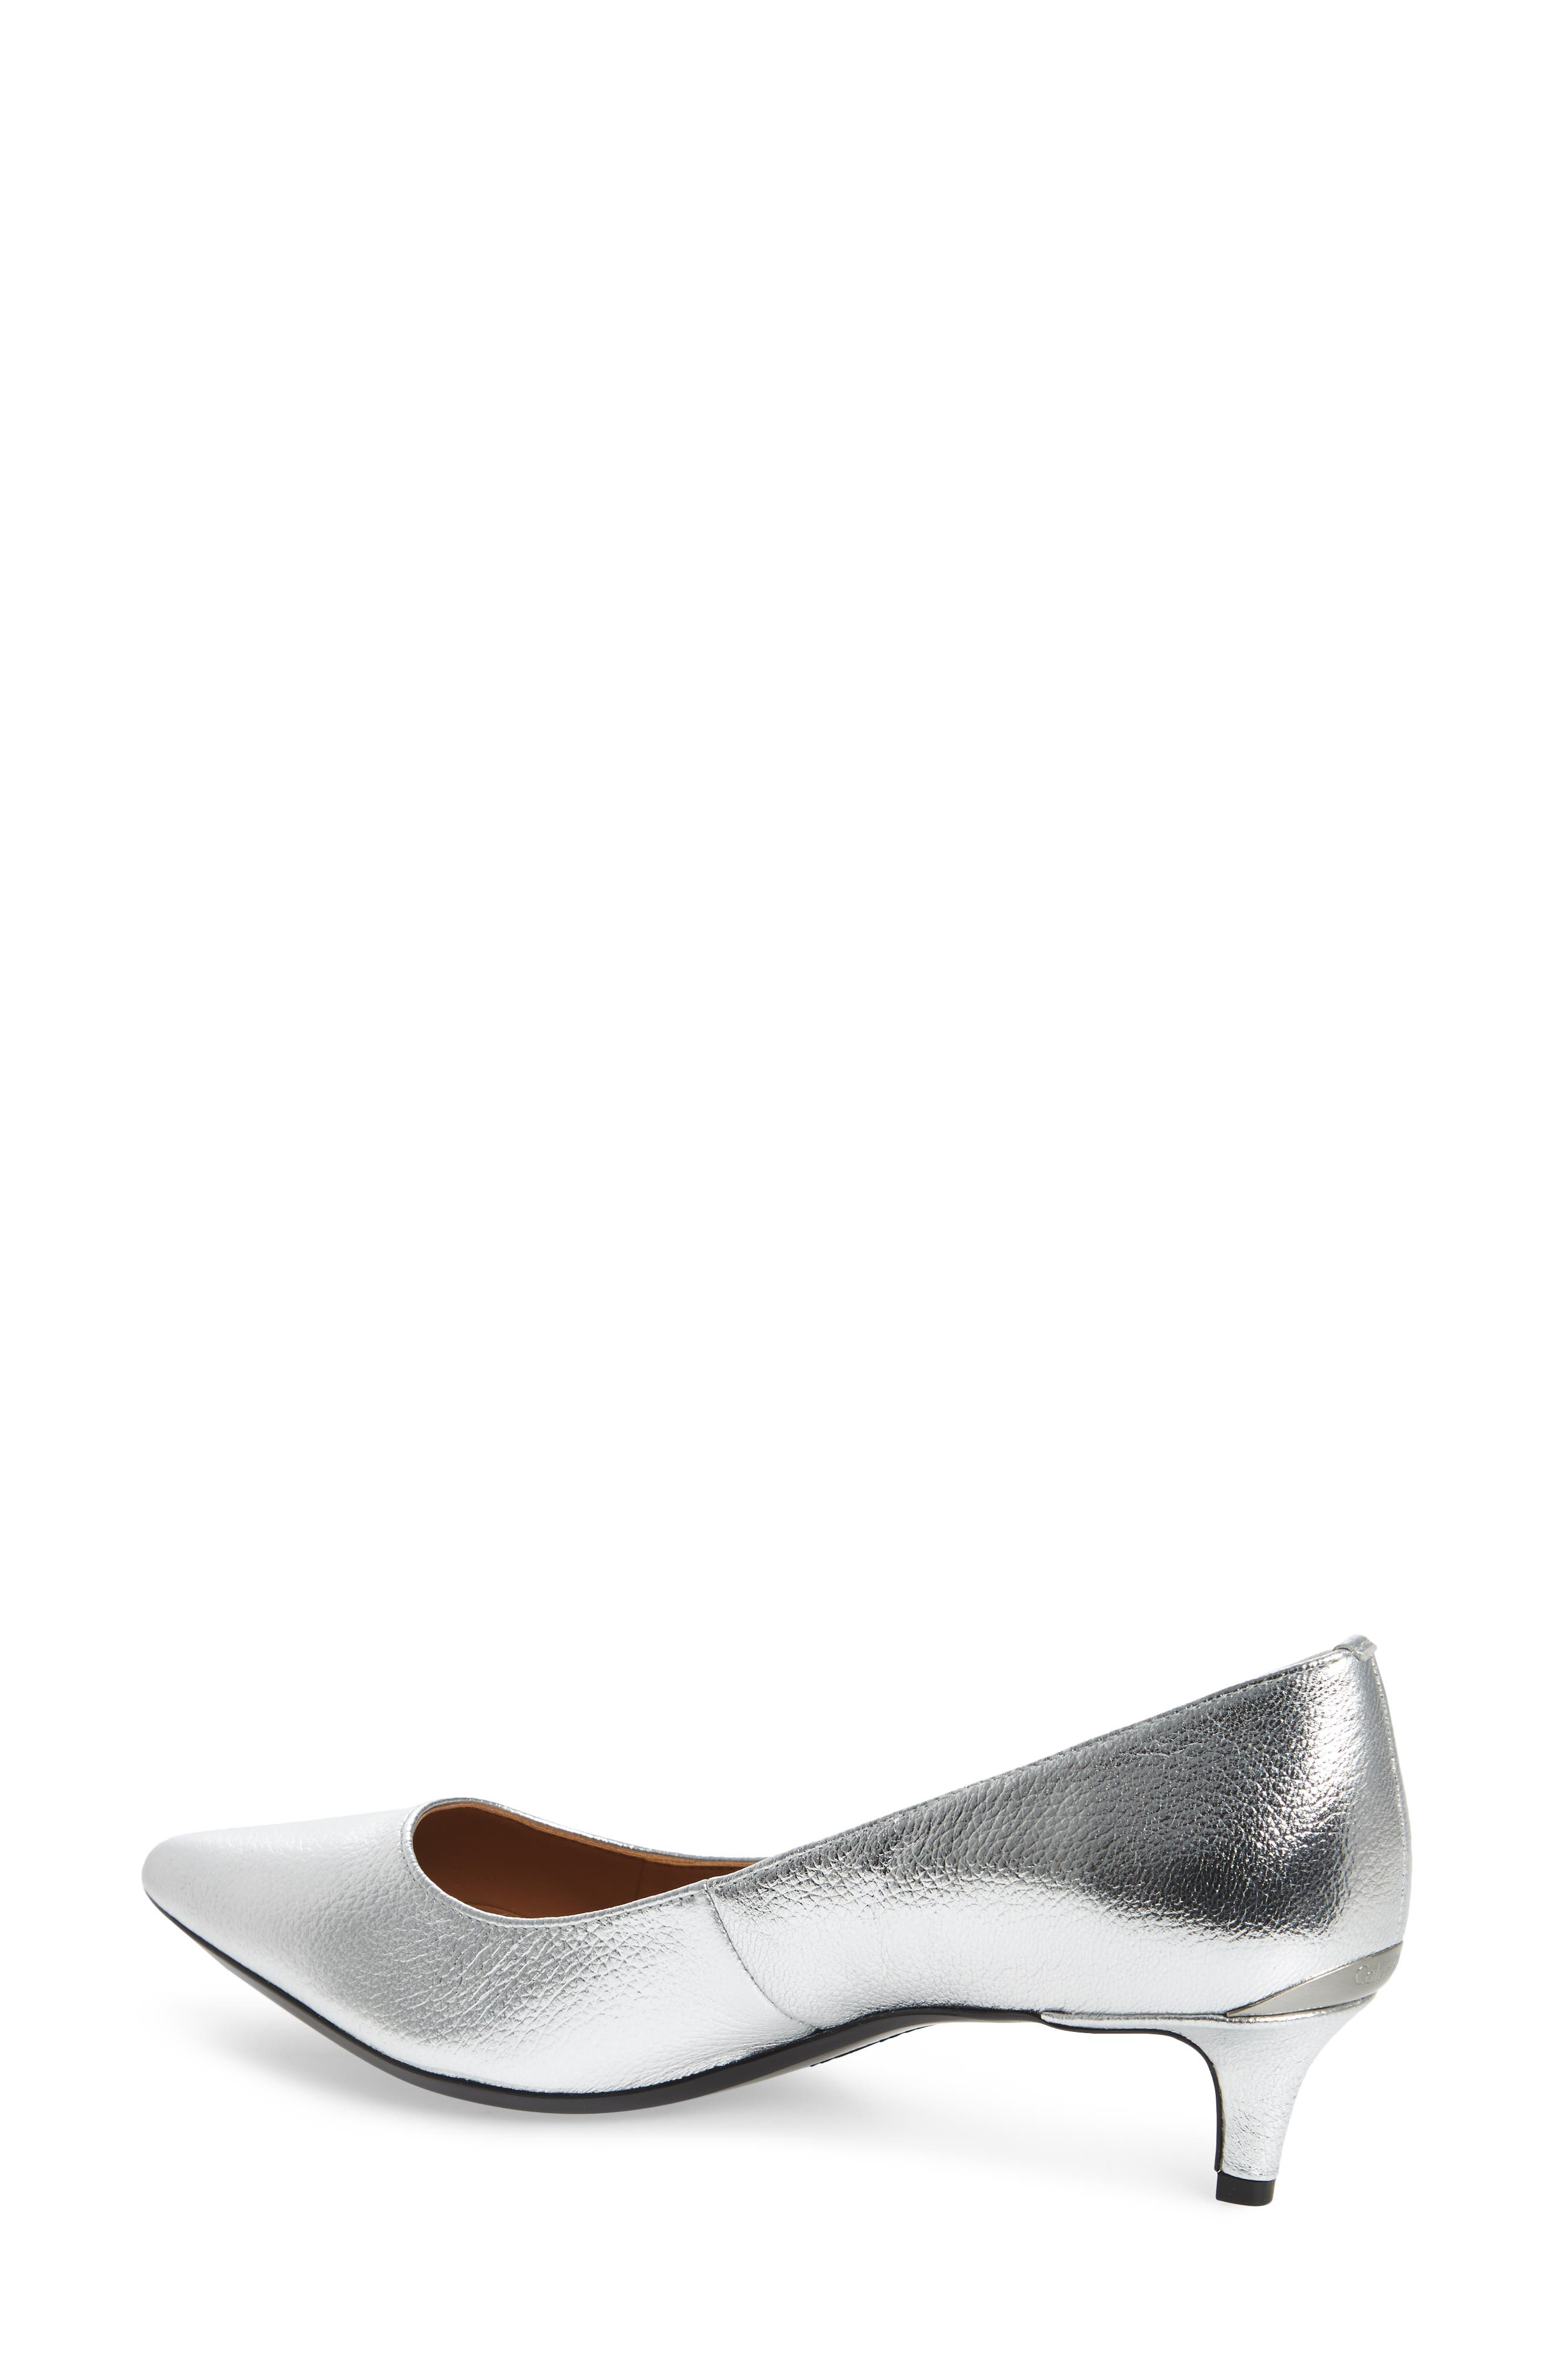 Gabrianna Pump,                             Alternate thumbnail 2, color,                             Silver Leather